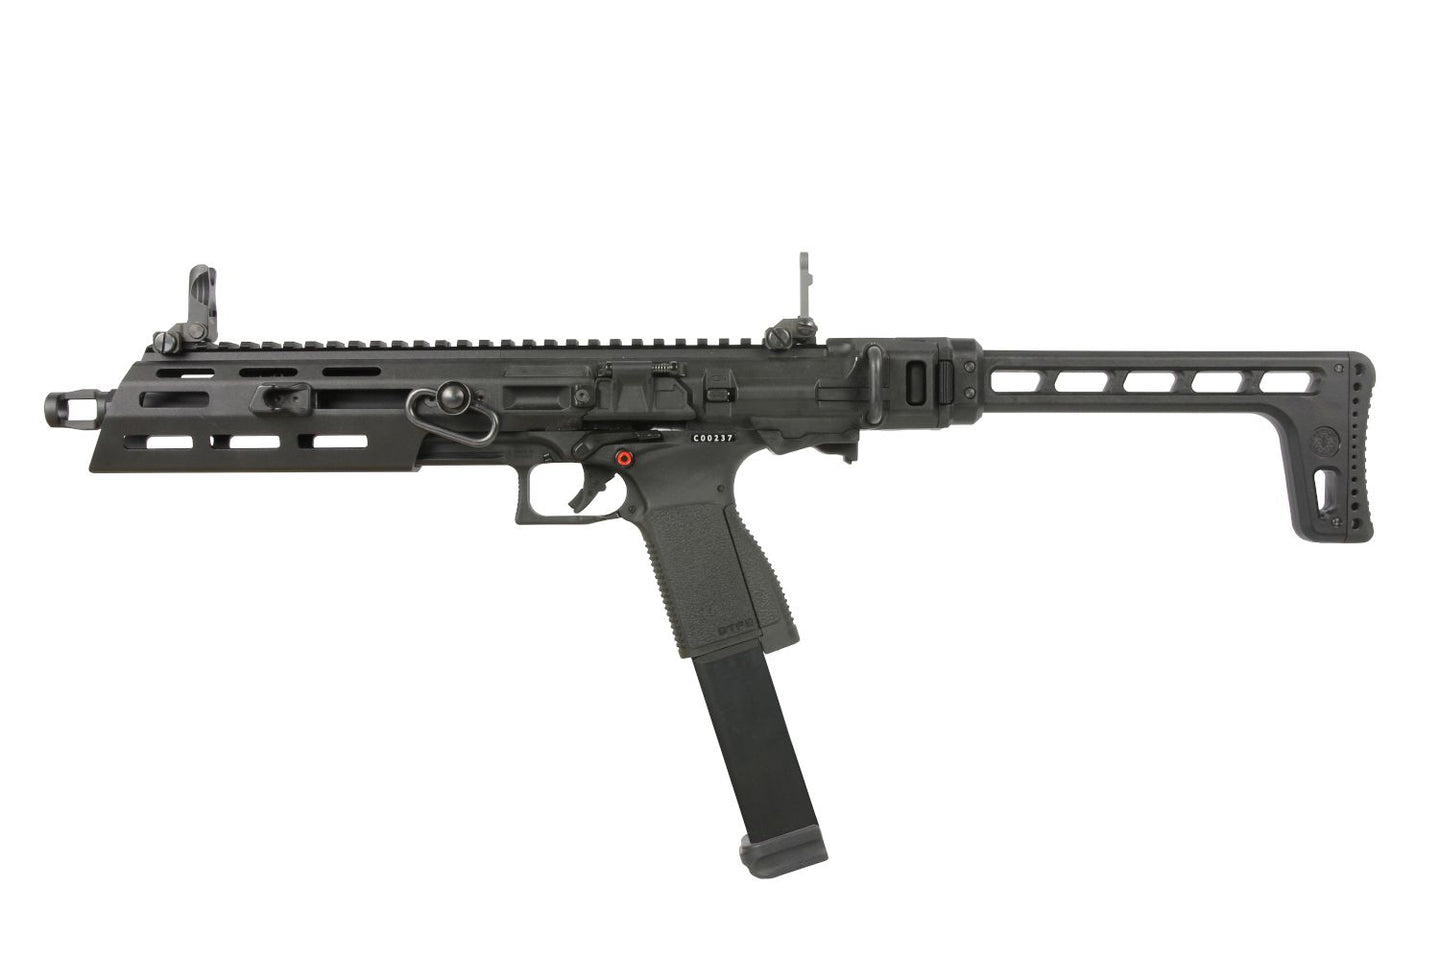 G&G SMC-9 Gas Blow Back Pistol Carbine SMG